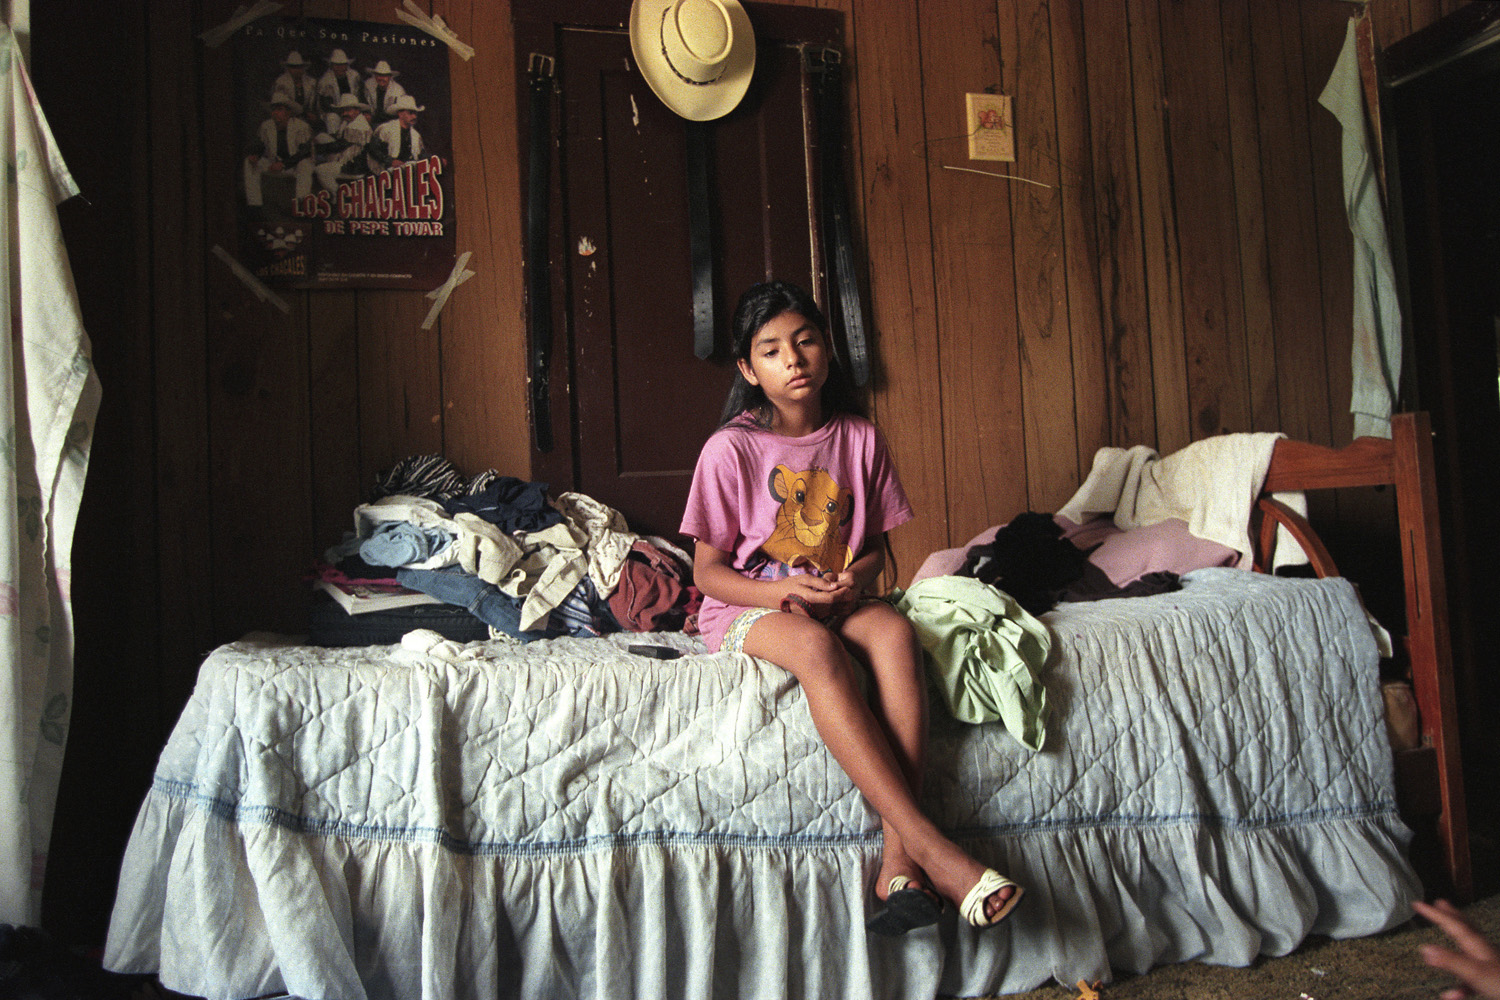 Texas, 2000. Marisol sits alone in her room, listening to the chaos of screaming parents and family members. Her family relocated to Texas soon after emigrating to Florida four years before. Tensions mounted between Marisol's parents and resulted in a bitter divorce that split her family in 2000.